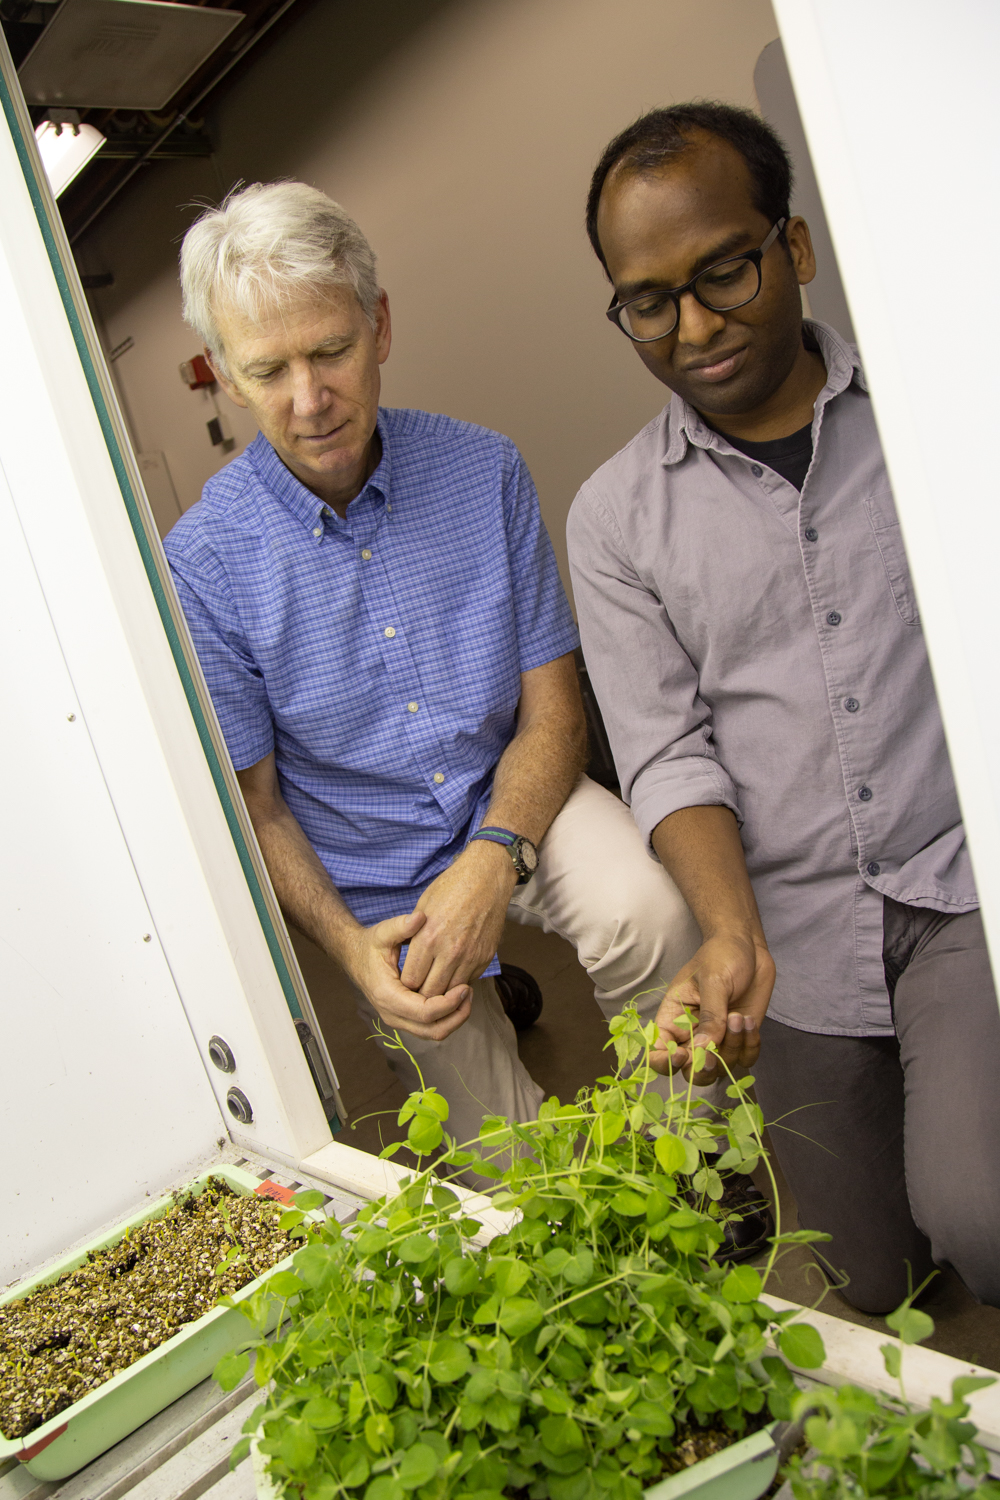 Steven Theg and Iniyan Ganesan look at their study subject, the garden pea.